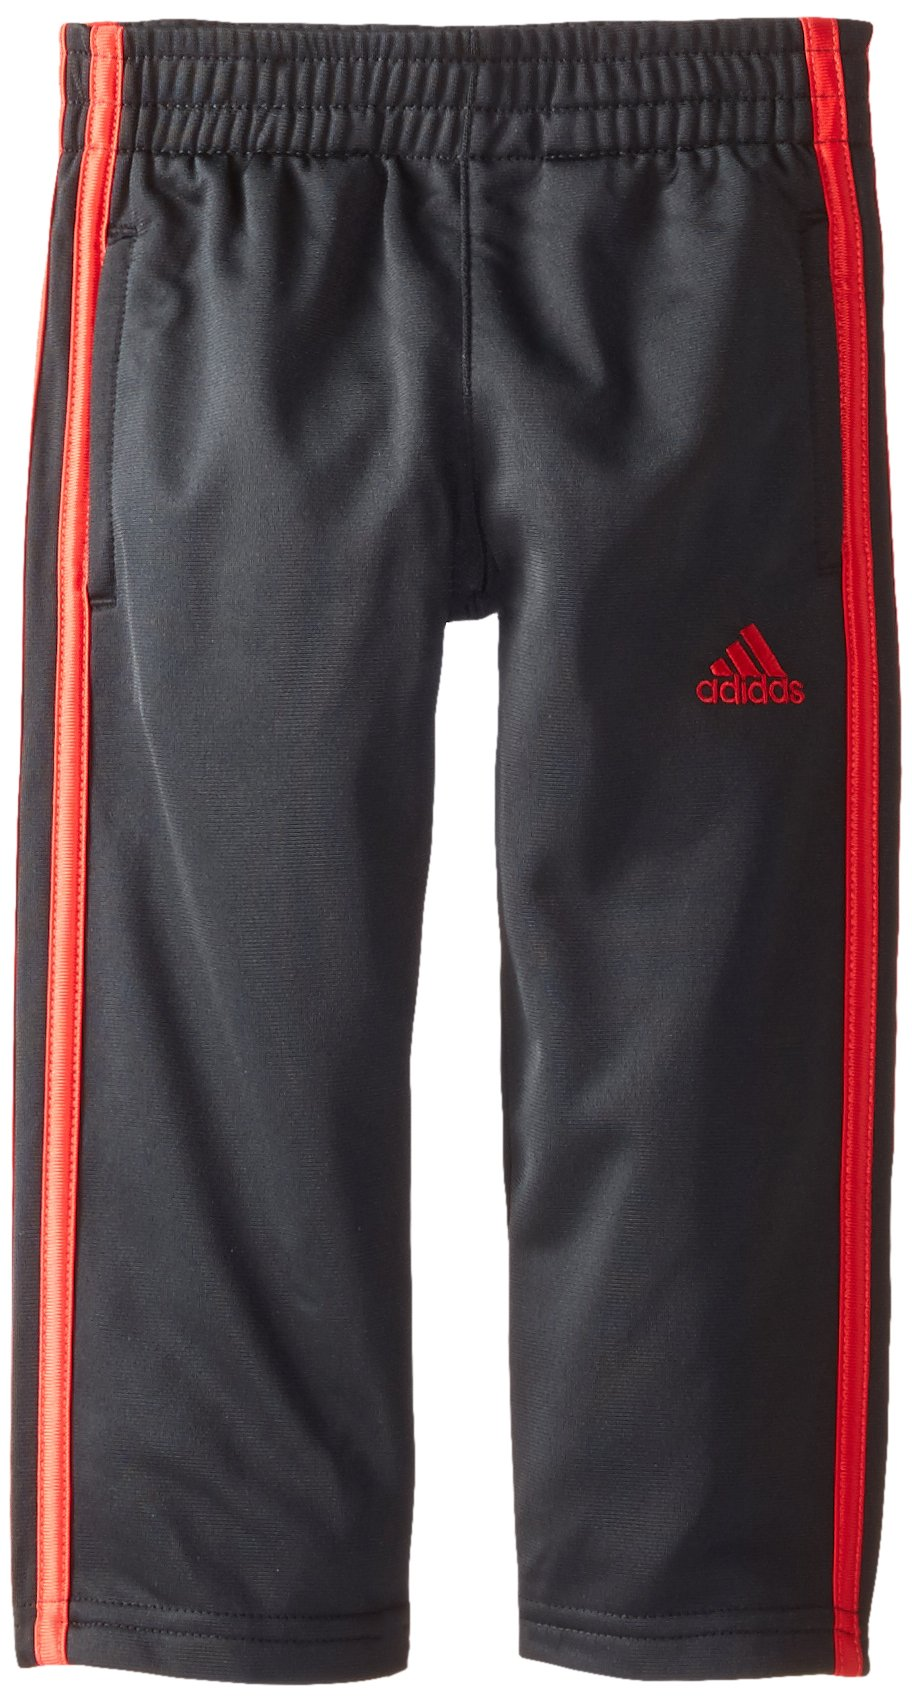 adidas Little Boys' Tricot Pant, Black/Light Scarlet, 6 by adidas